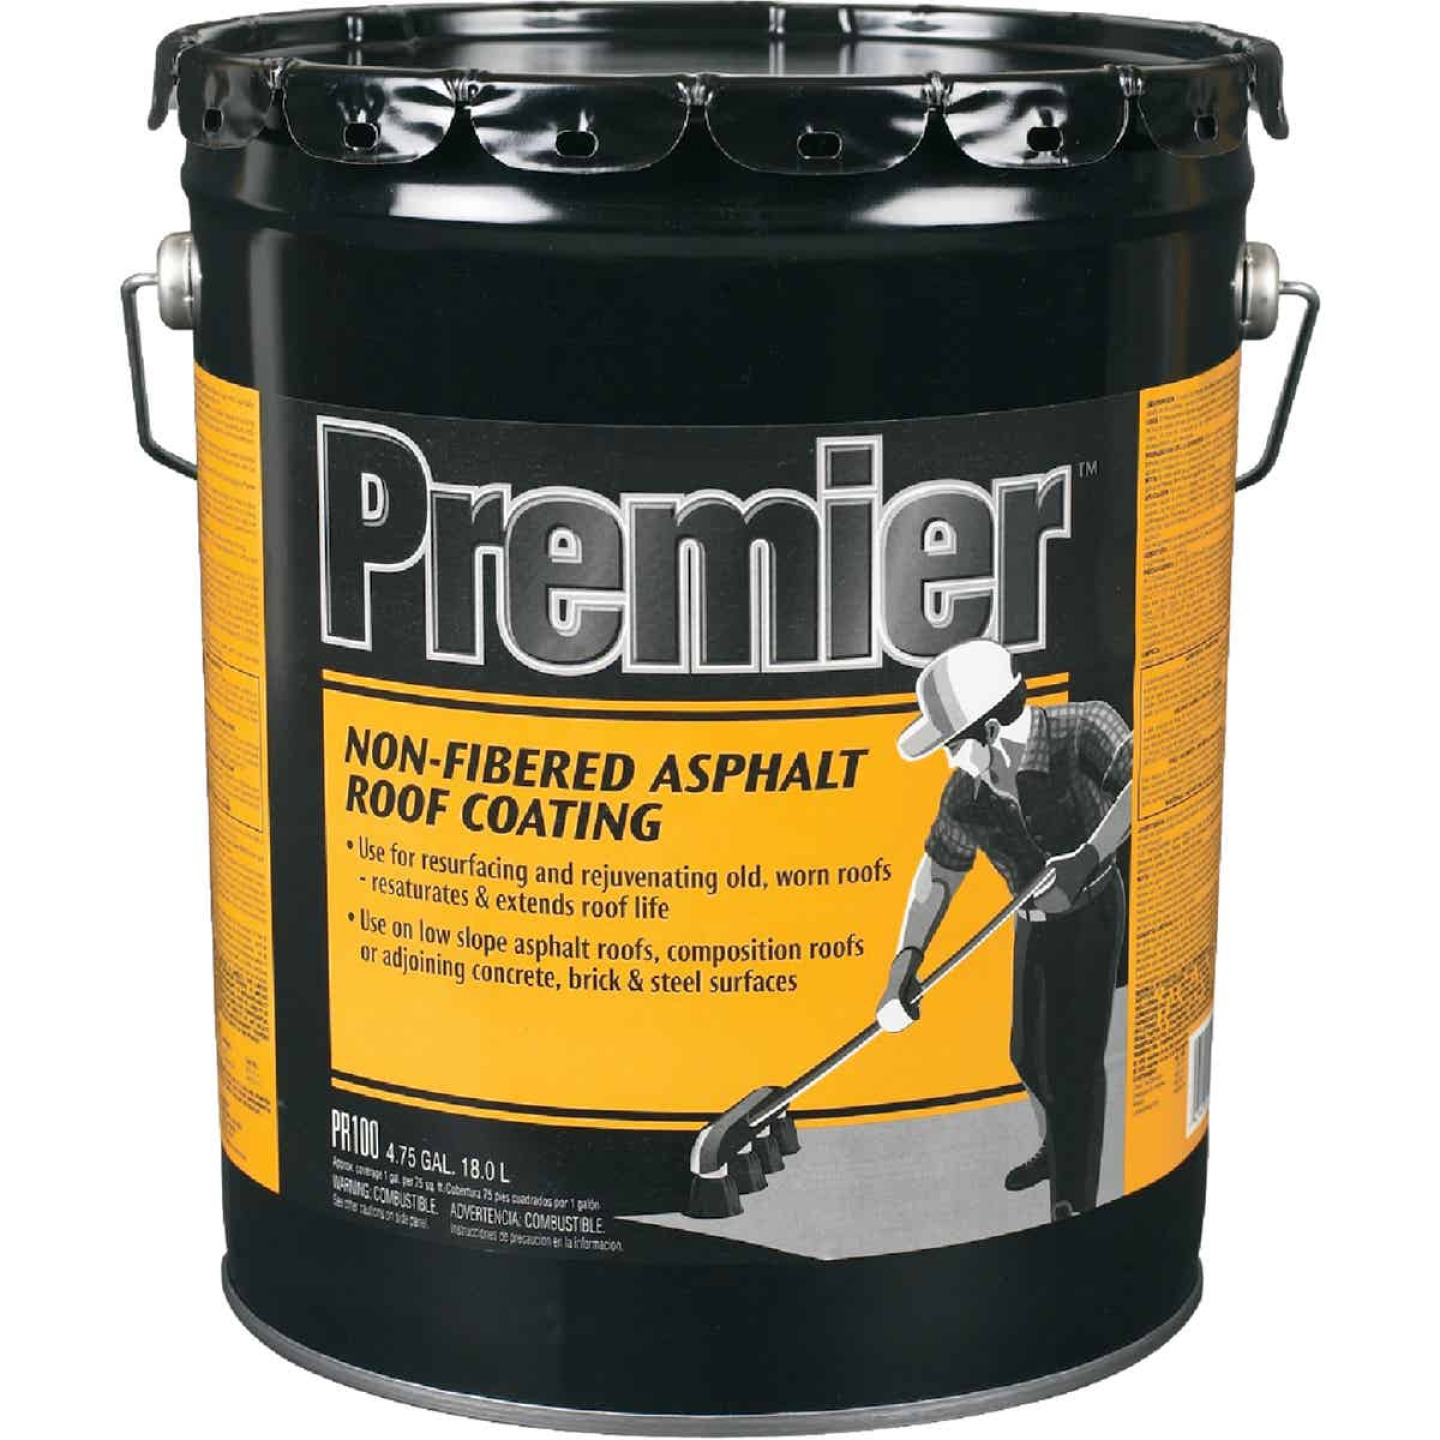 Premier 5 Gal. Non-Fibered Asphalt Roof Coating Image 1